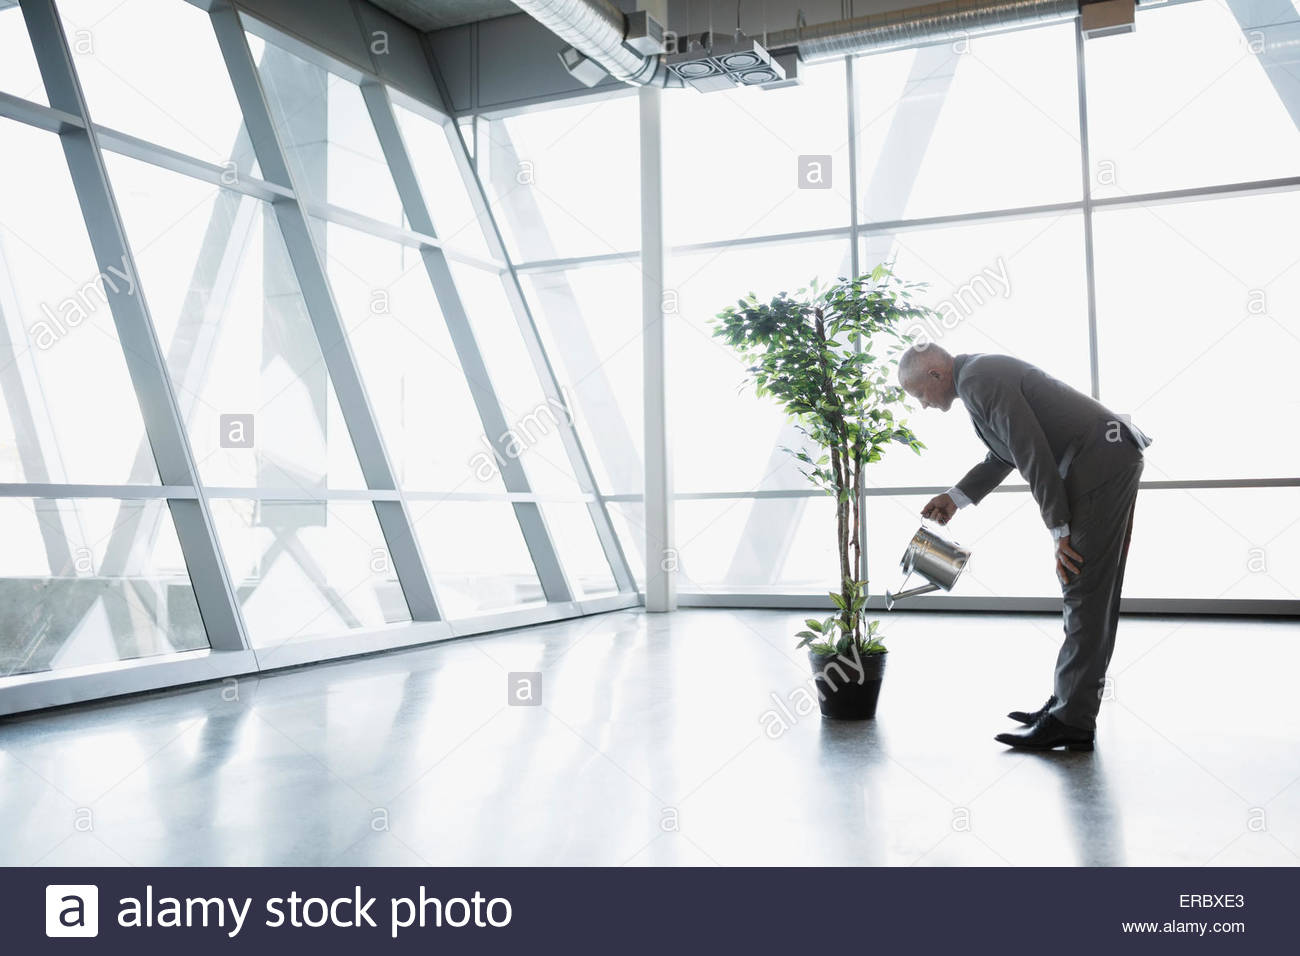 Businessman watering potted tree in modern office - Stock Image